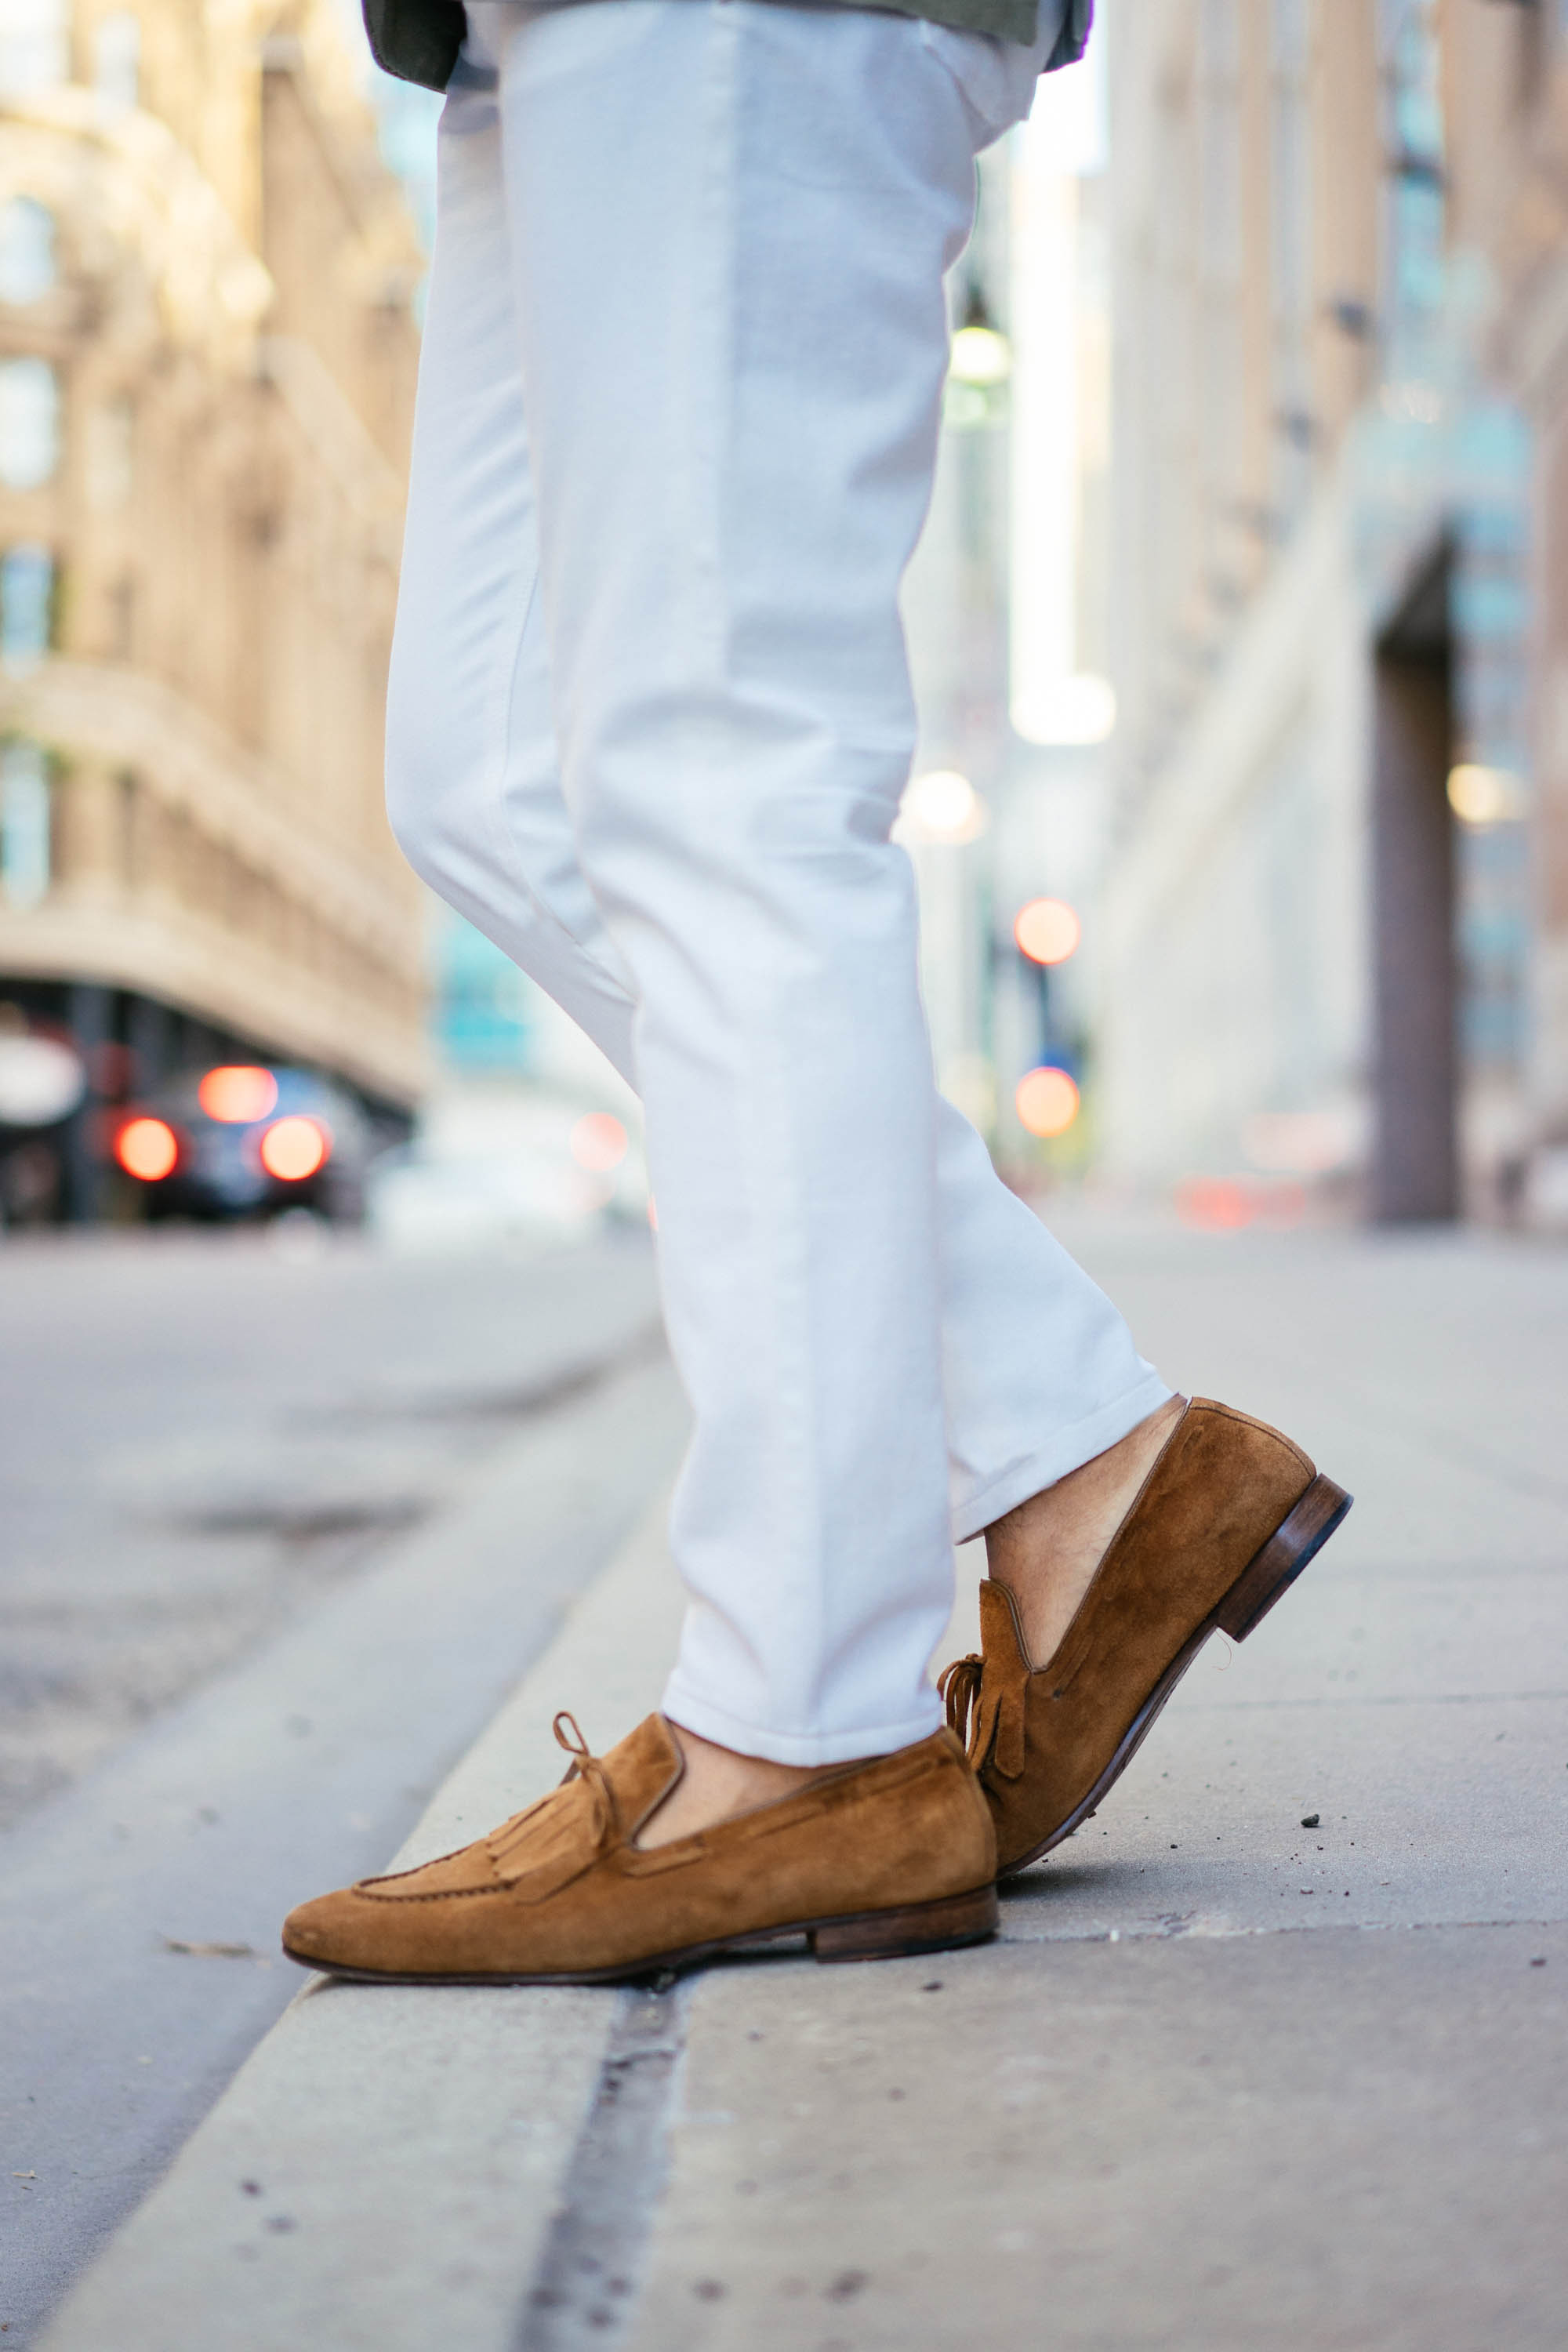 Possibly the biggest benefit of spring for me: sock-less loafers